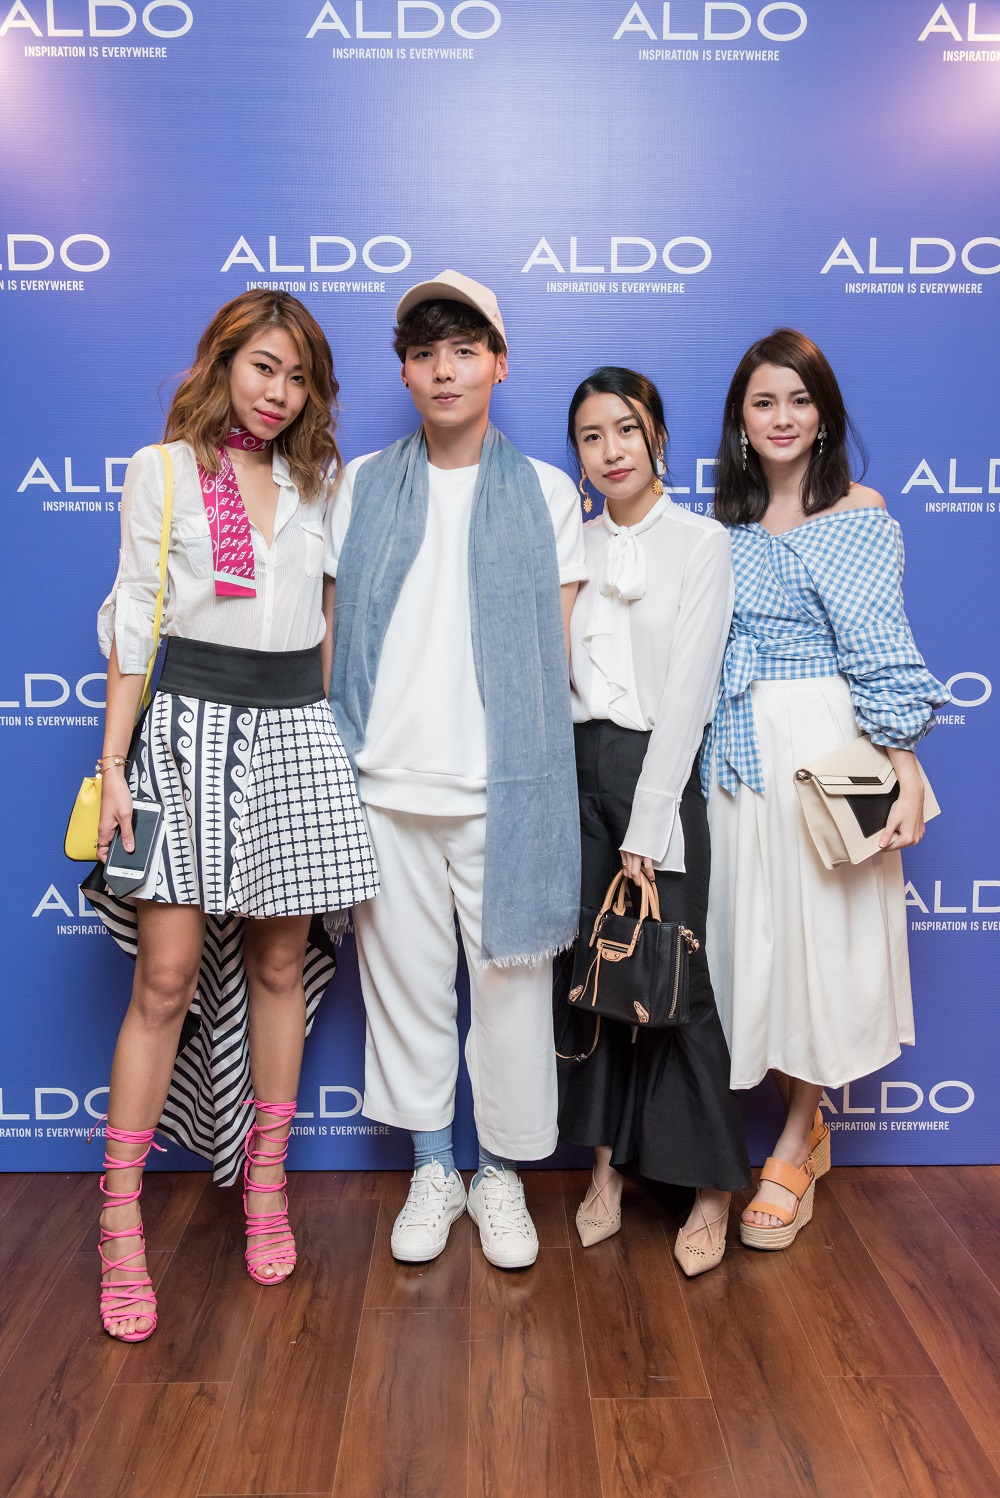 ALDO Shoes, ALDO Singapore, ALDO Fashion Party